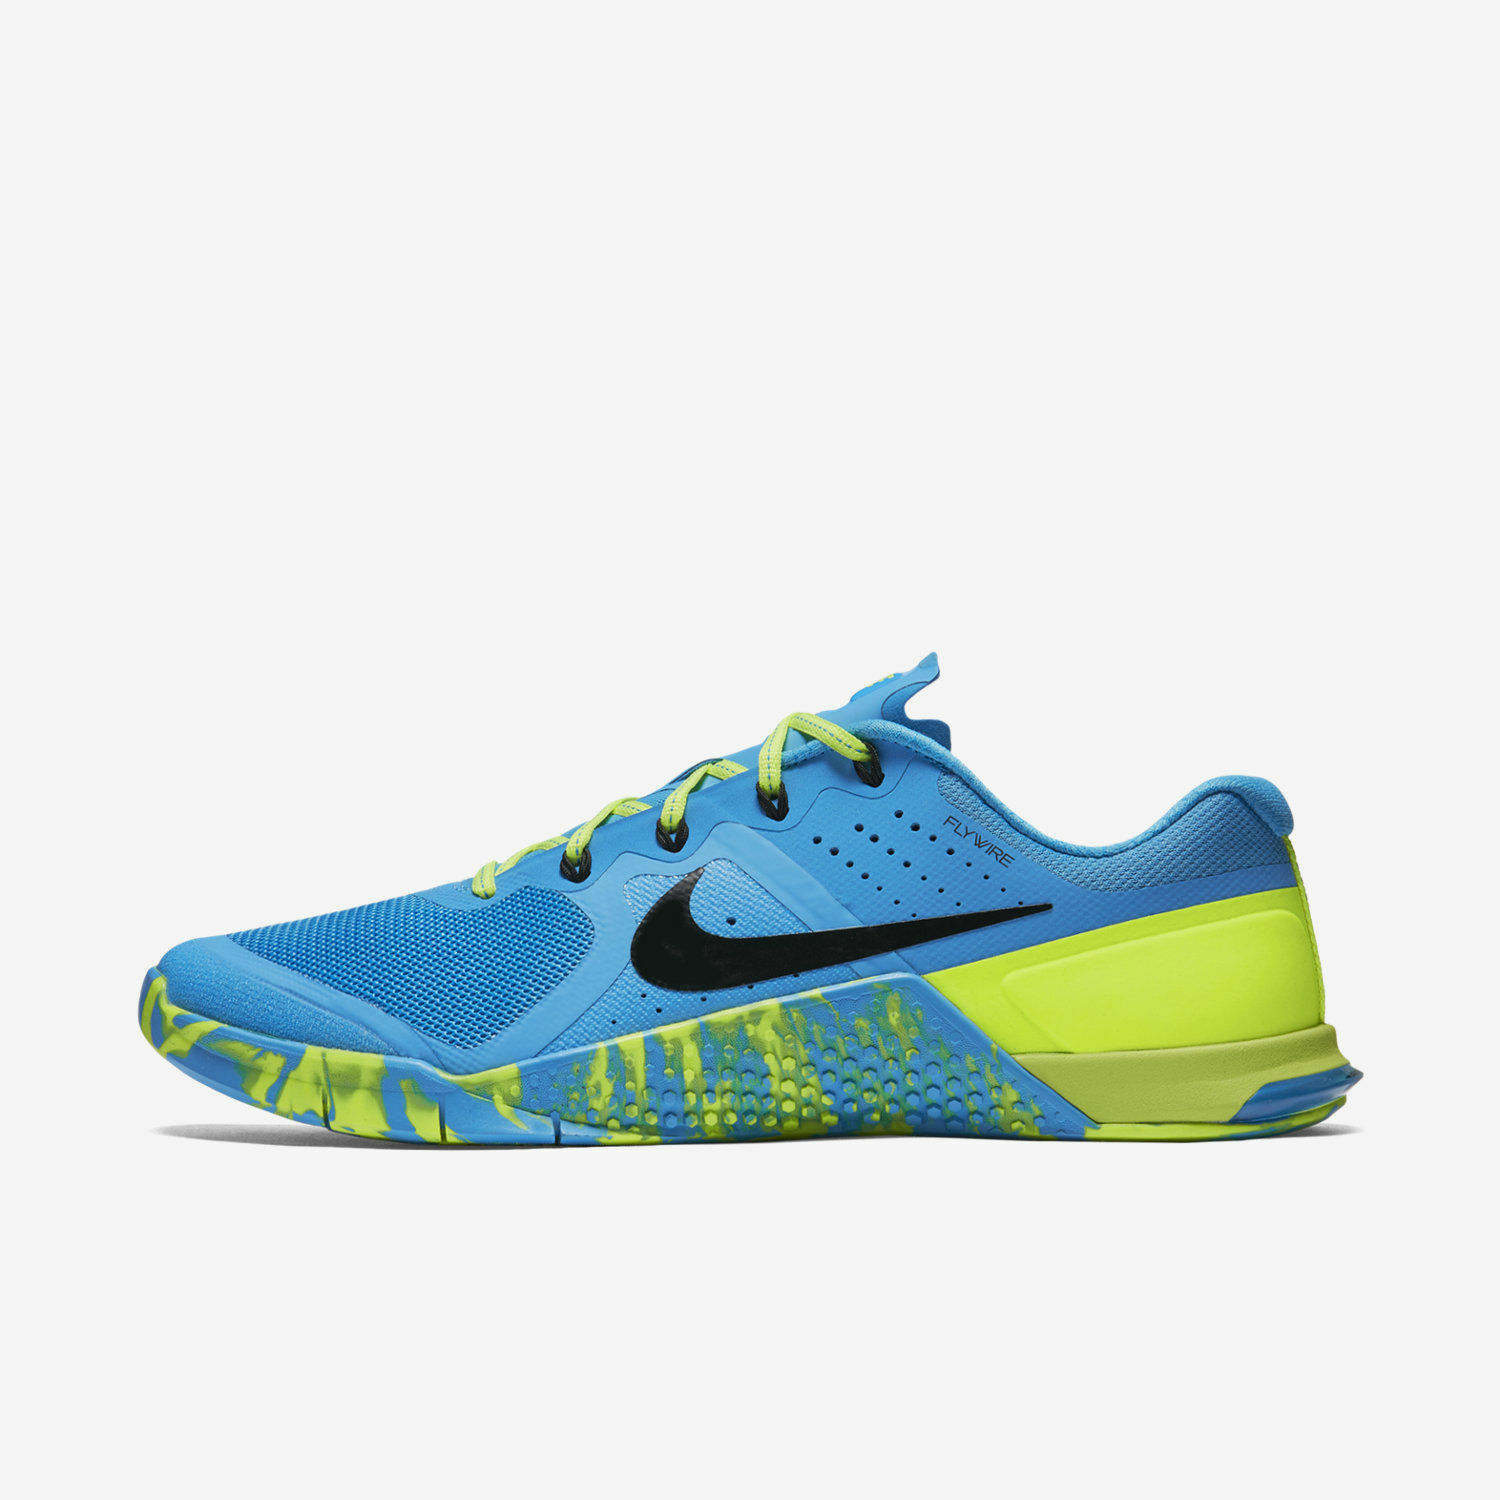 Nike Nike Nike Womens Metcon 2 Amp Trainer shoes Sneakers bluee Glow Volt Black 843972 400 702f25